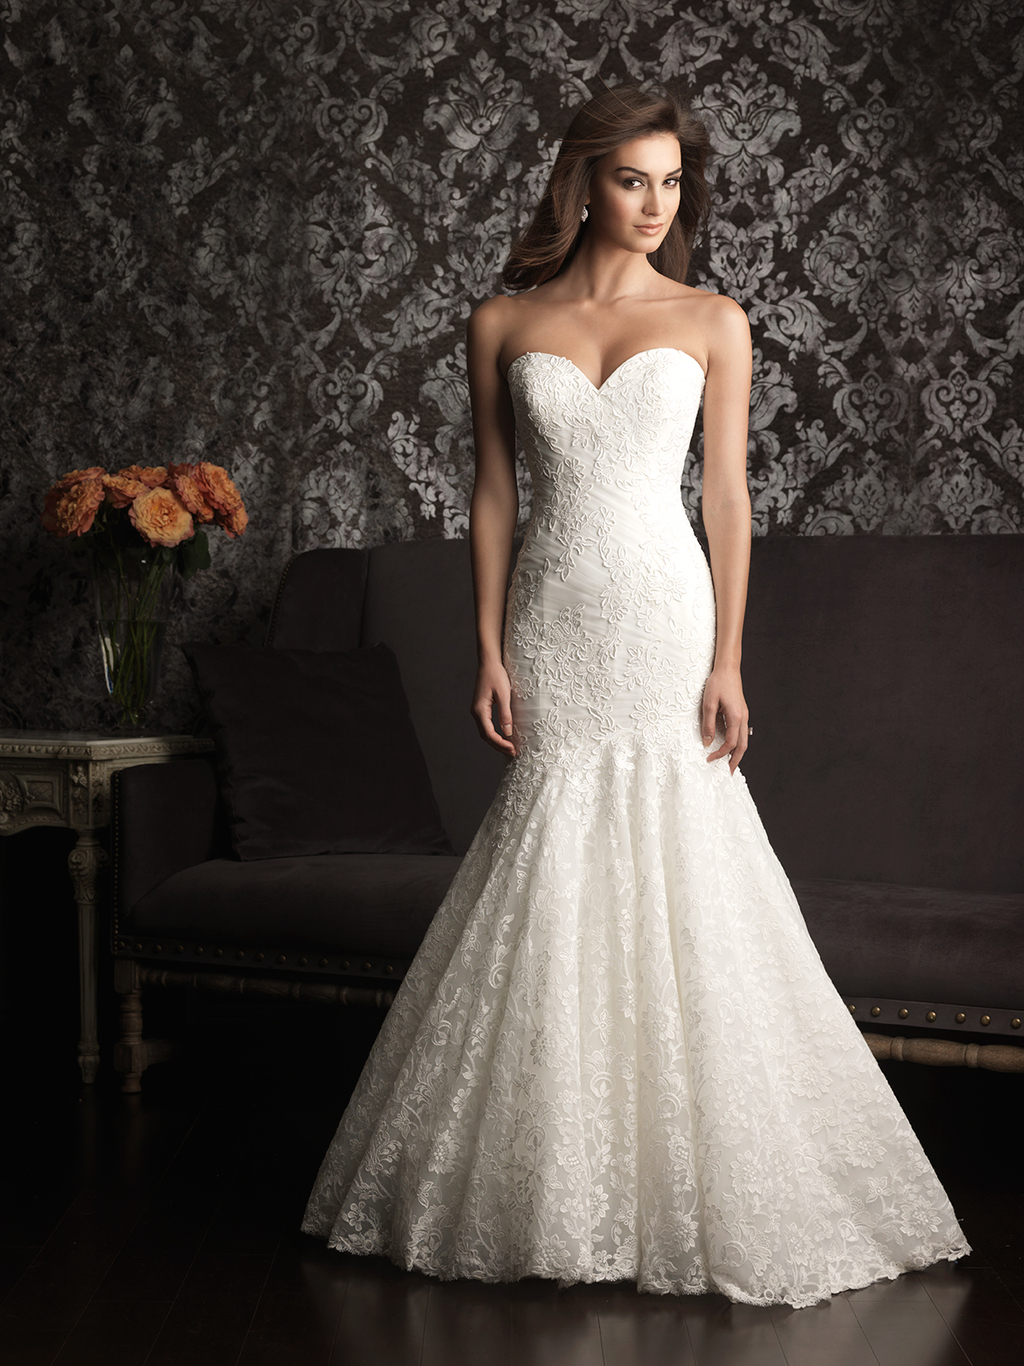 Allure Bridals Wedding Dress Bridal Gown Allure Collection Sweetheart 9023F